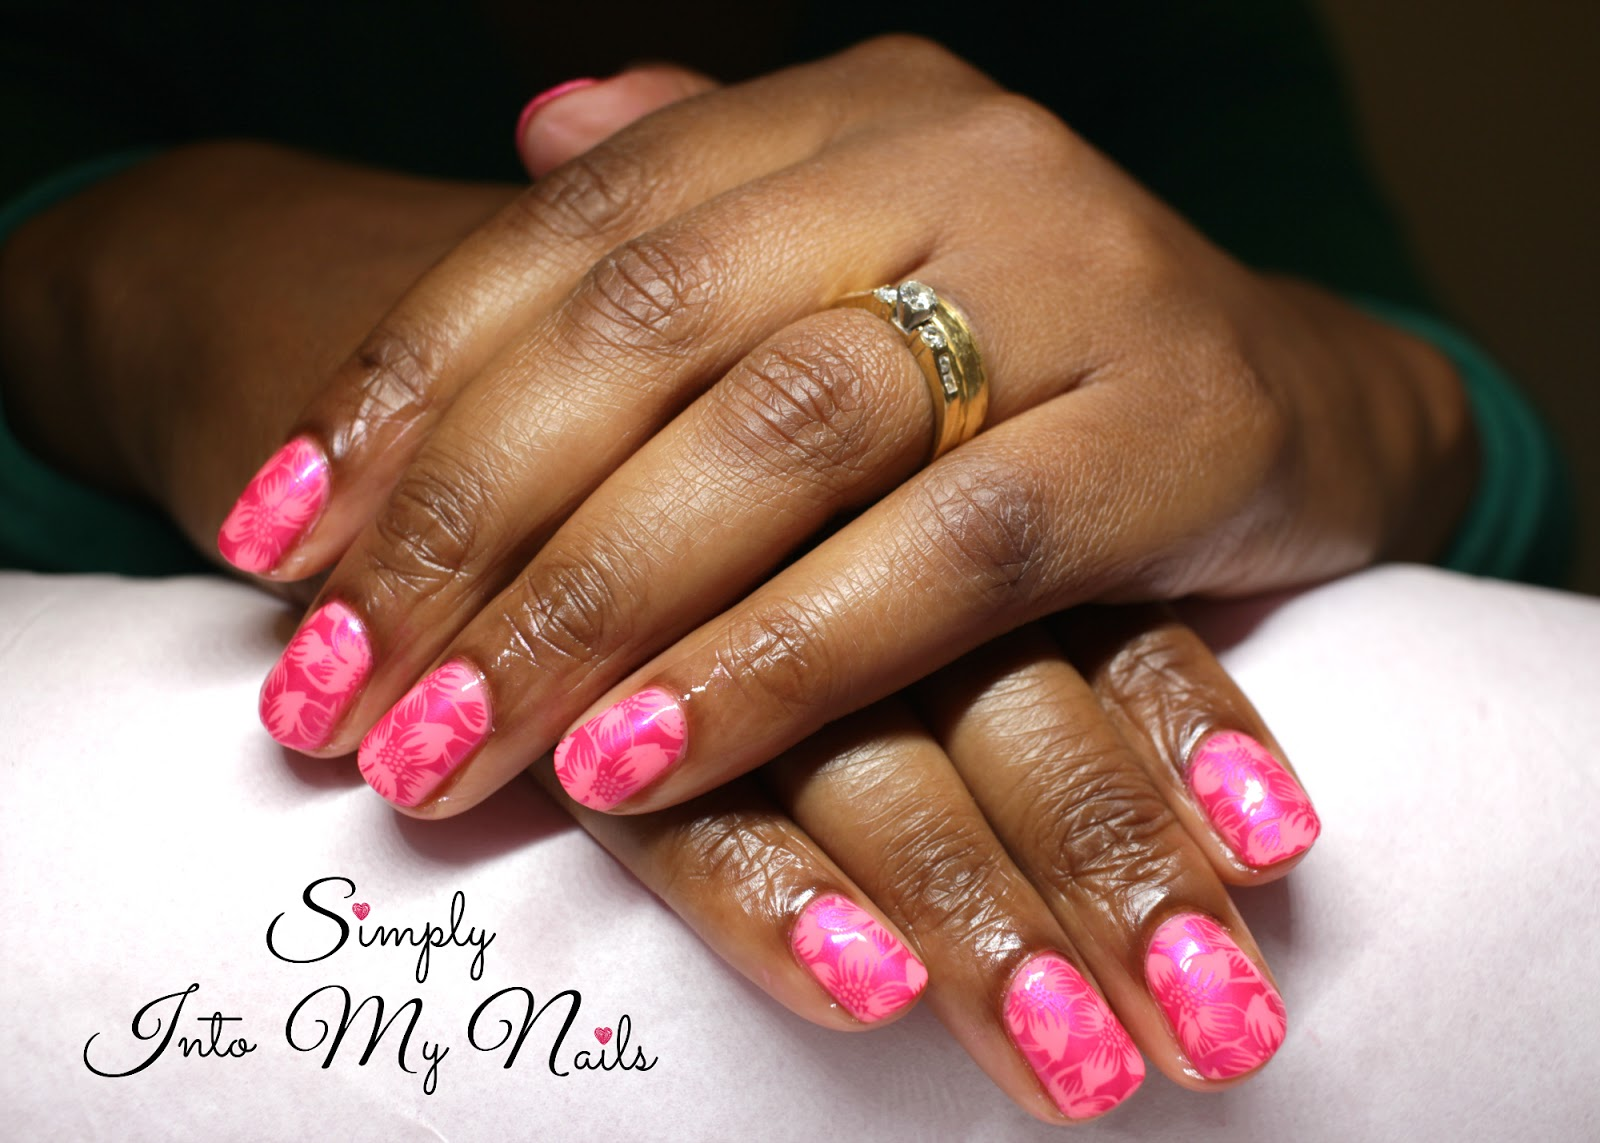 My clients simply into my nails - Diva nails roma ...